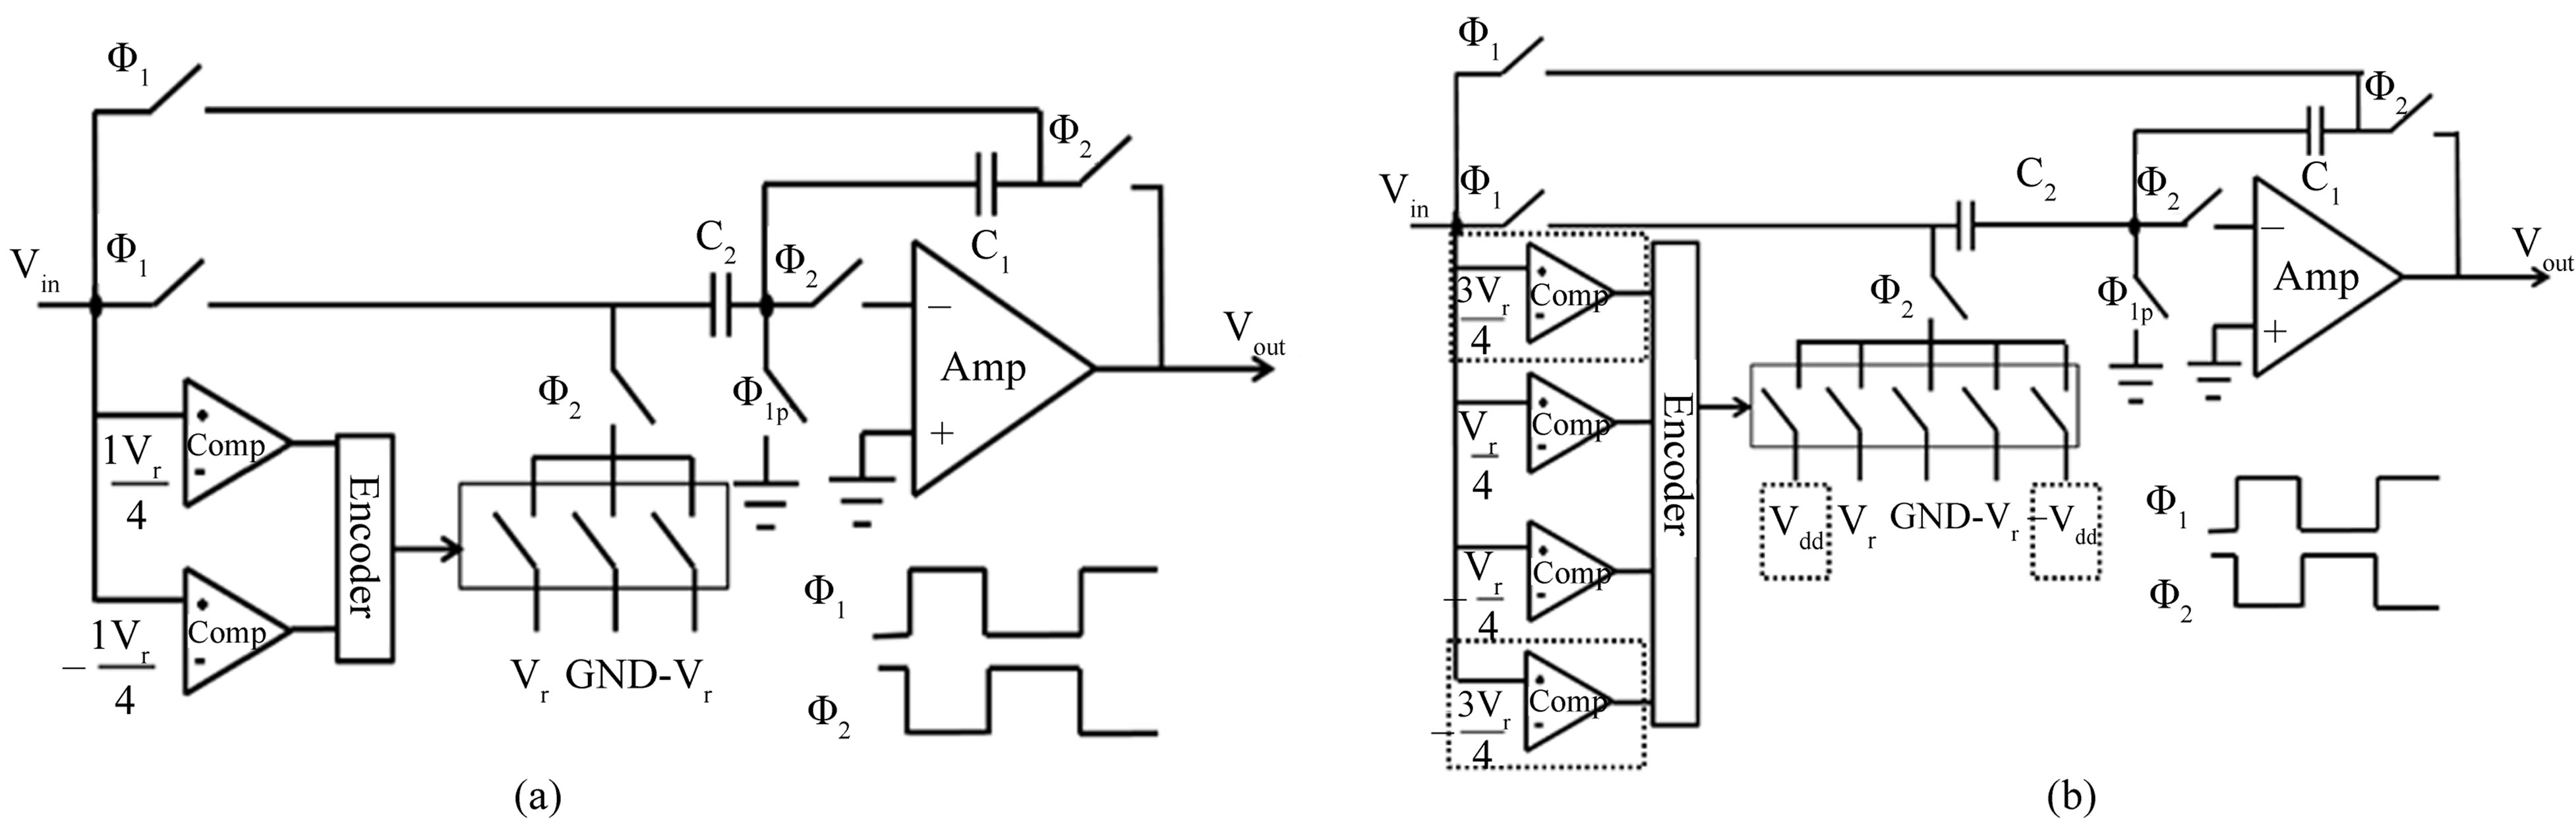 Basic Block Diagram Of A Stage In Apipelined A D Converter Is As